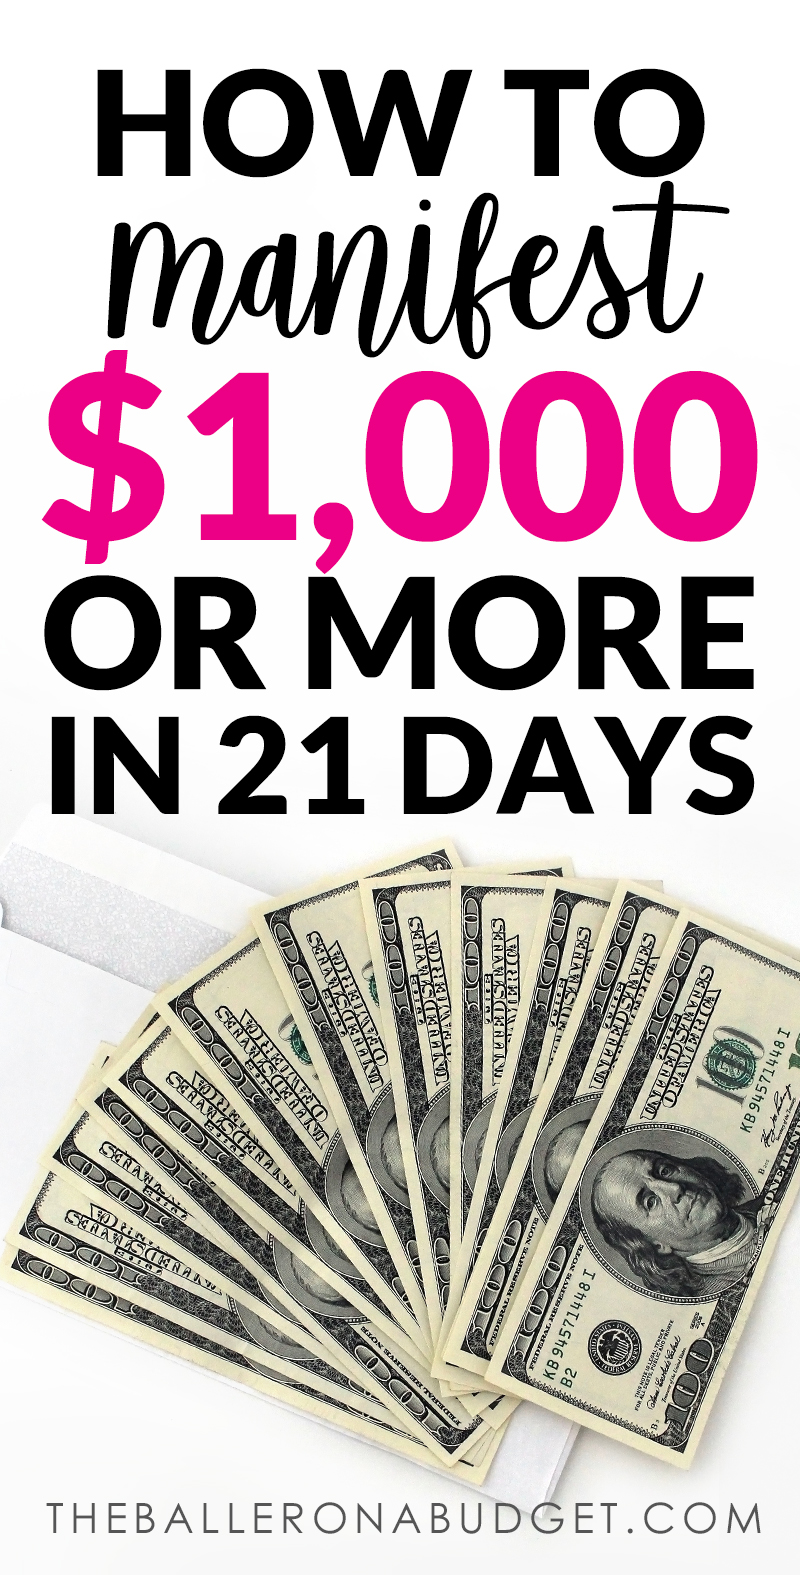 Pinterest image about how to manifest $1,000 or more in less than 21 days